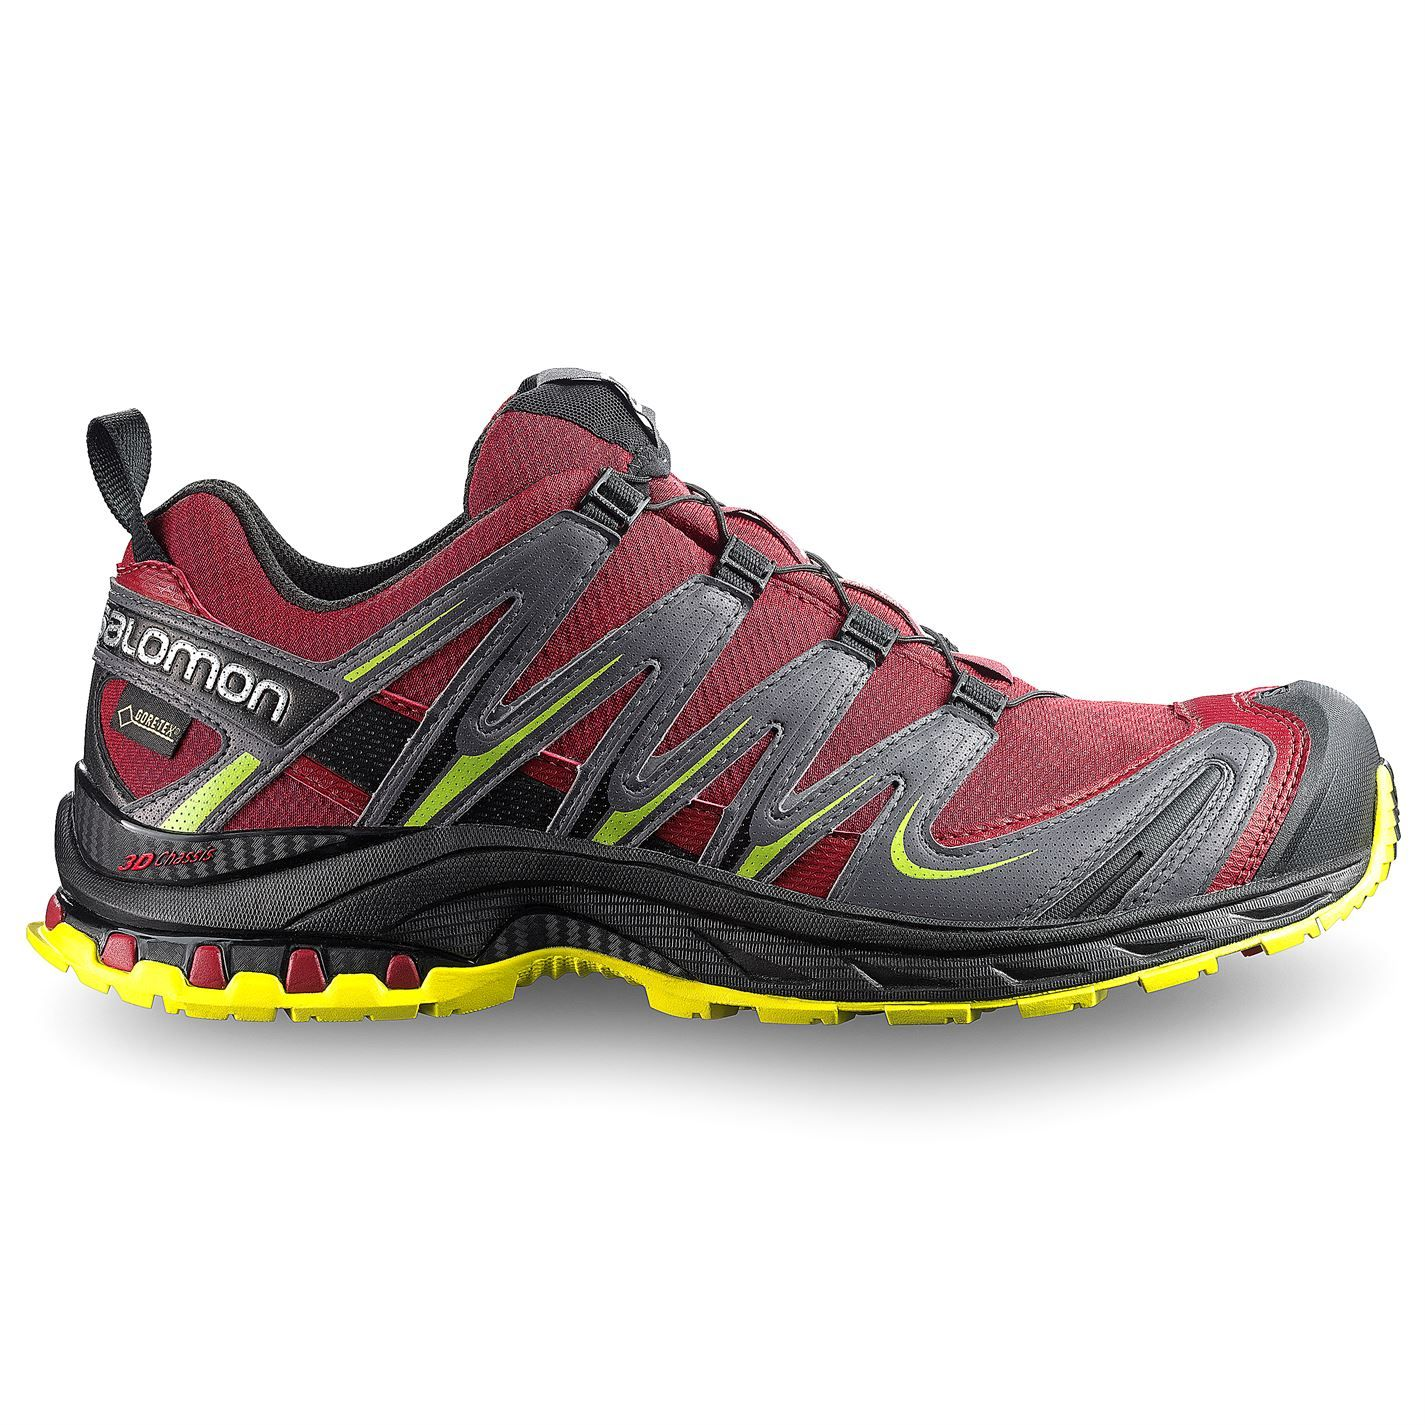 SALOMON WOMENS XA Pro 3D Mountain Trail Gore Tex Walking